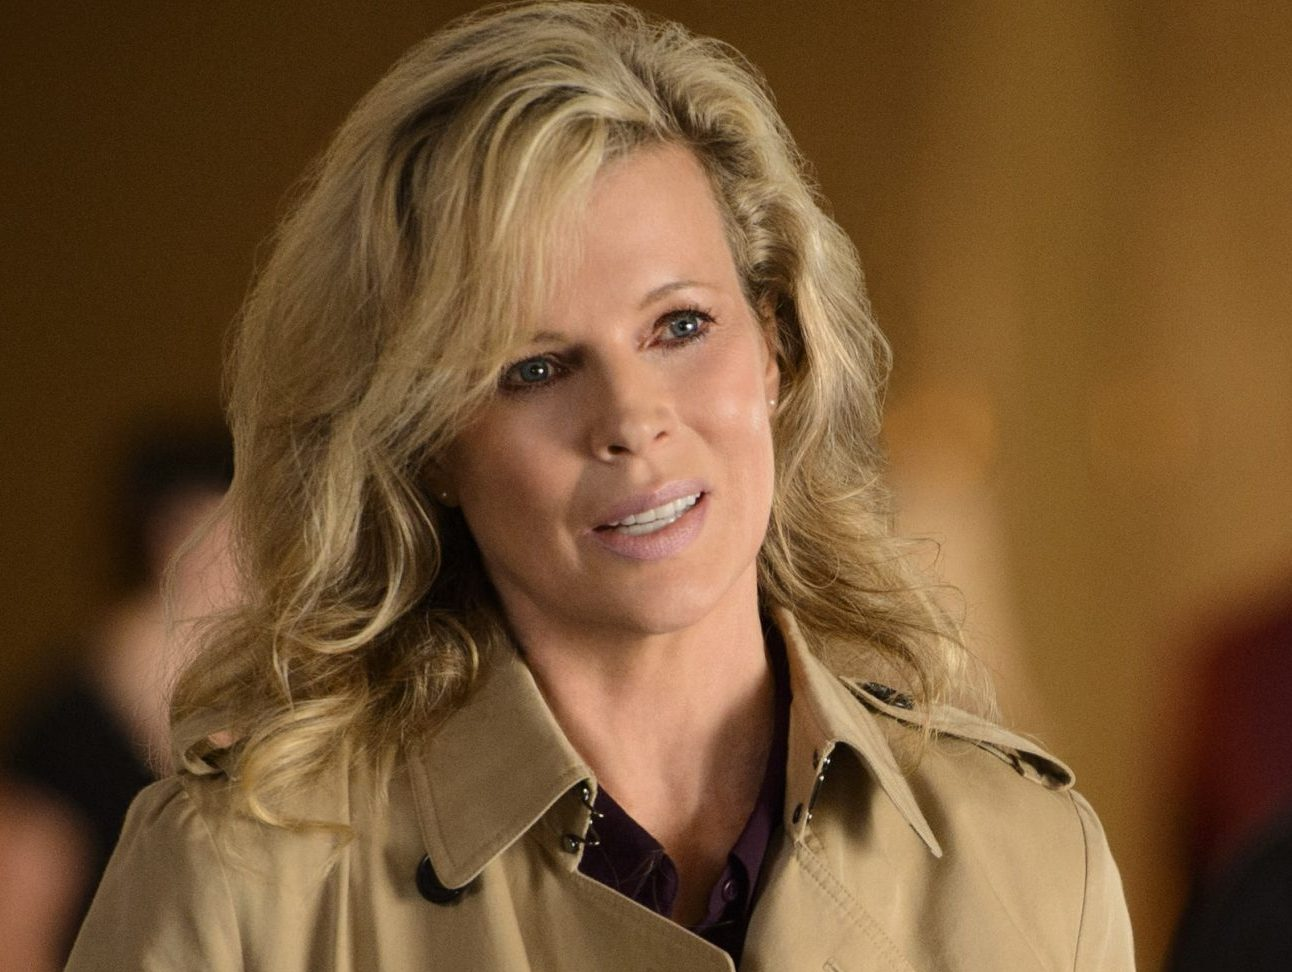 Kim Basinger in Grudge Match scaled e1616748102734 20 Celebrities Who Went Completely Broke